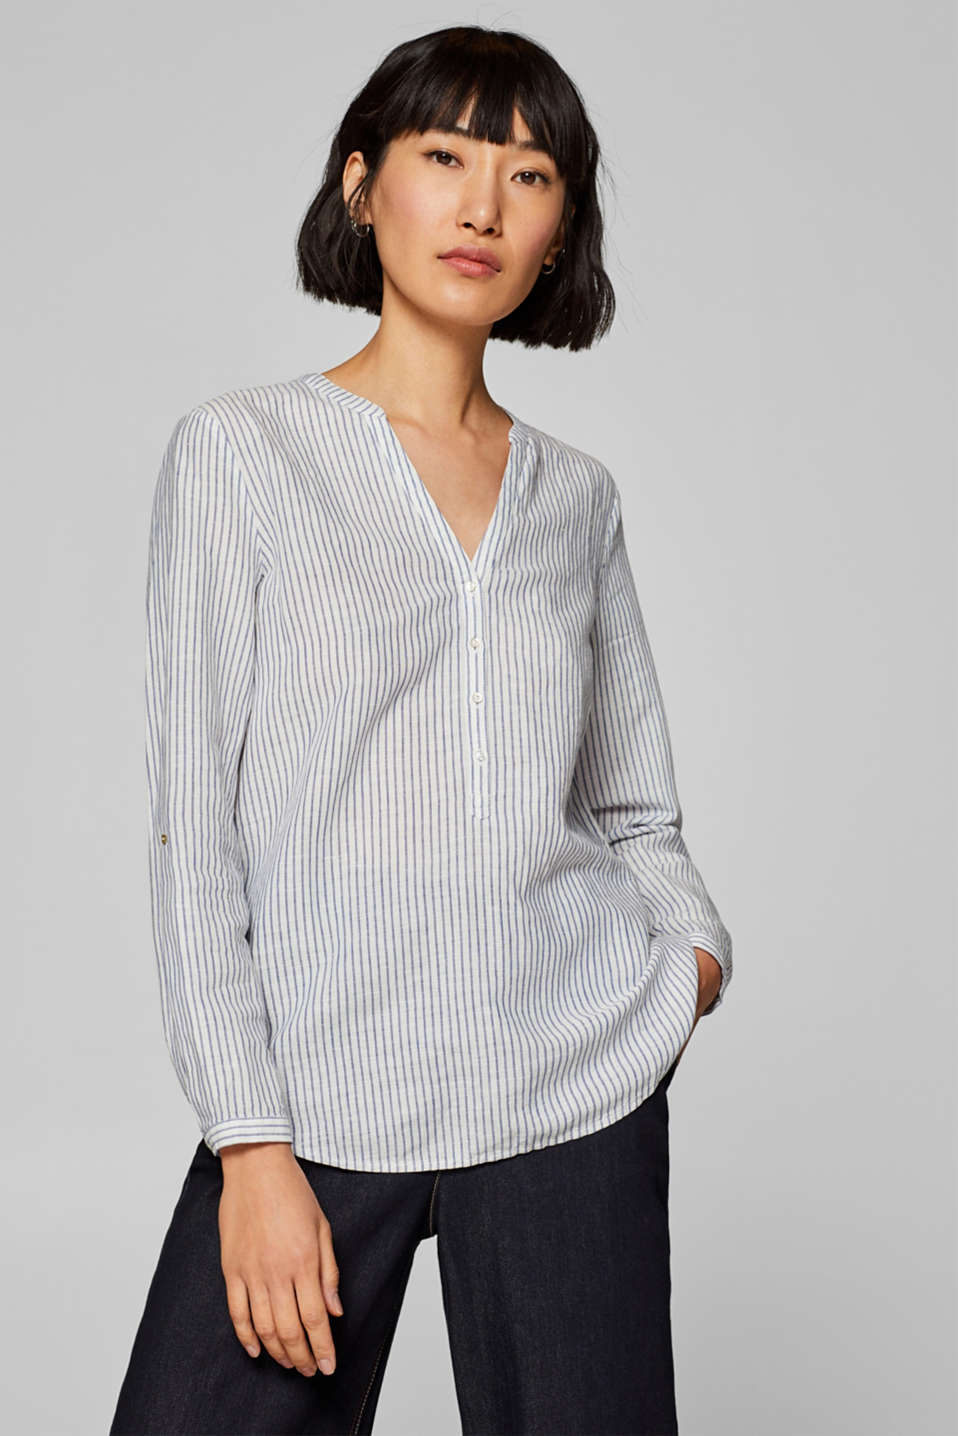 Esprit - Made of blended linen: Henley blouse with stripes